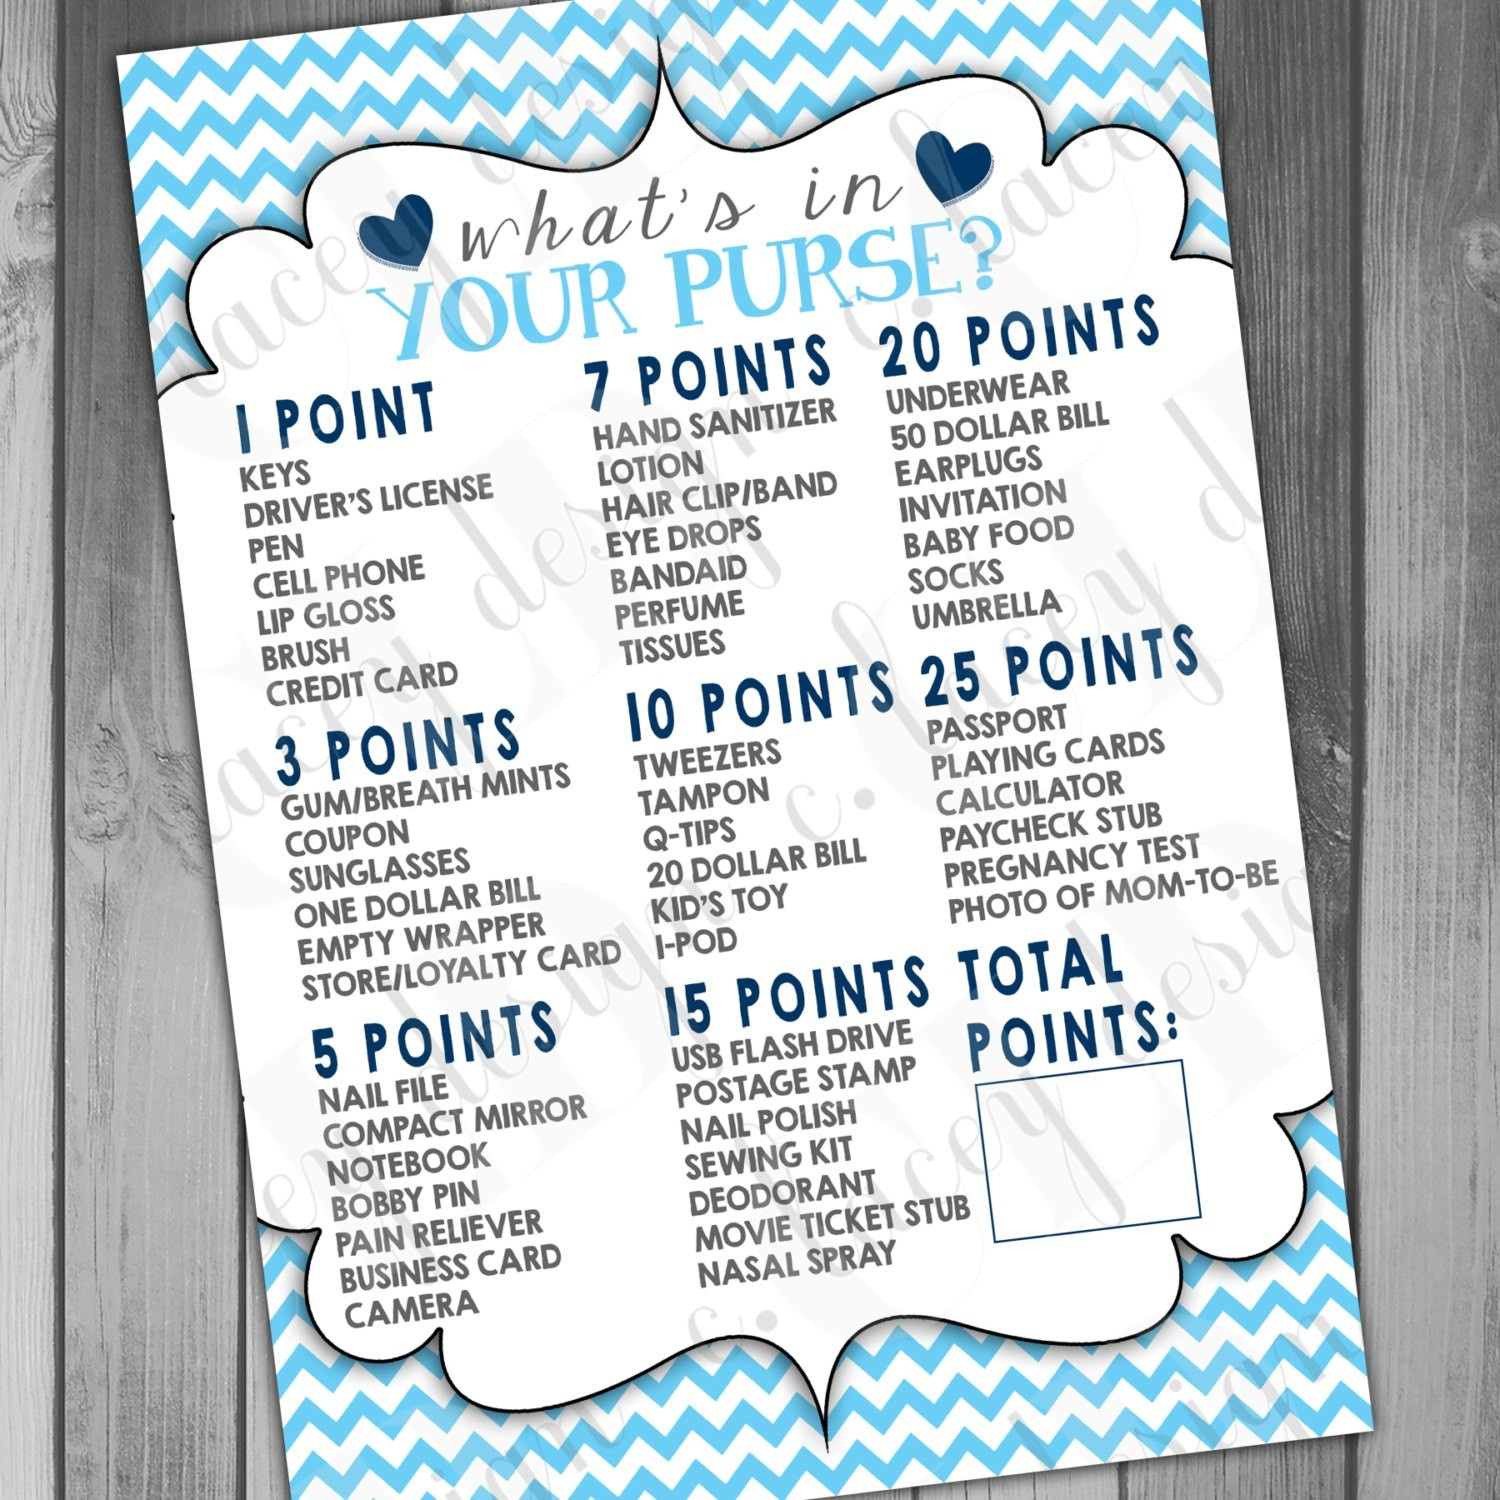 Beautiful Ideas Boy Baby Shower Games Printable Whats In Your Purse - Free Printable Baby Shower Game What's In Your Purse